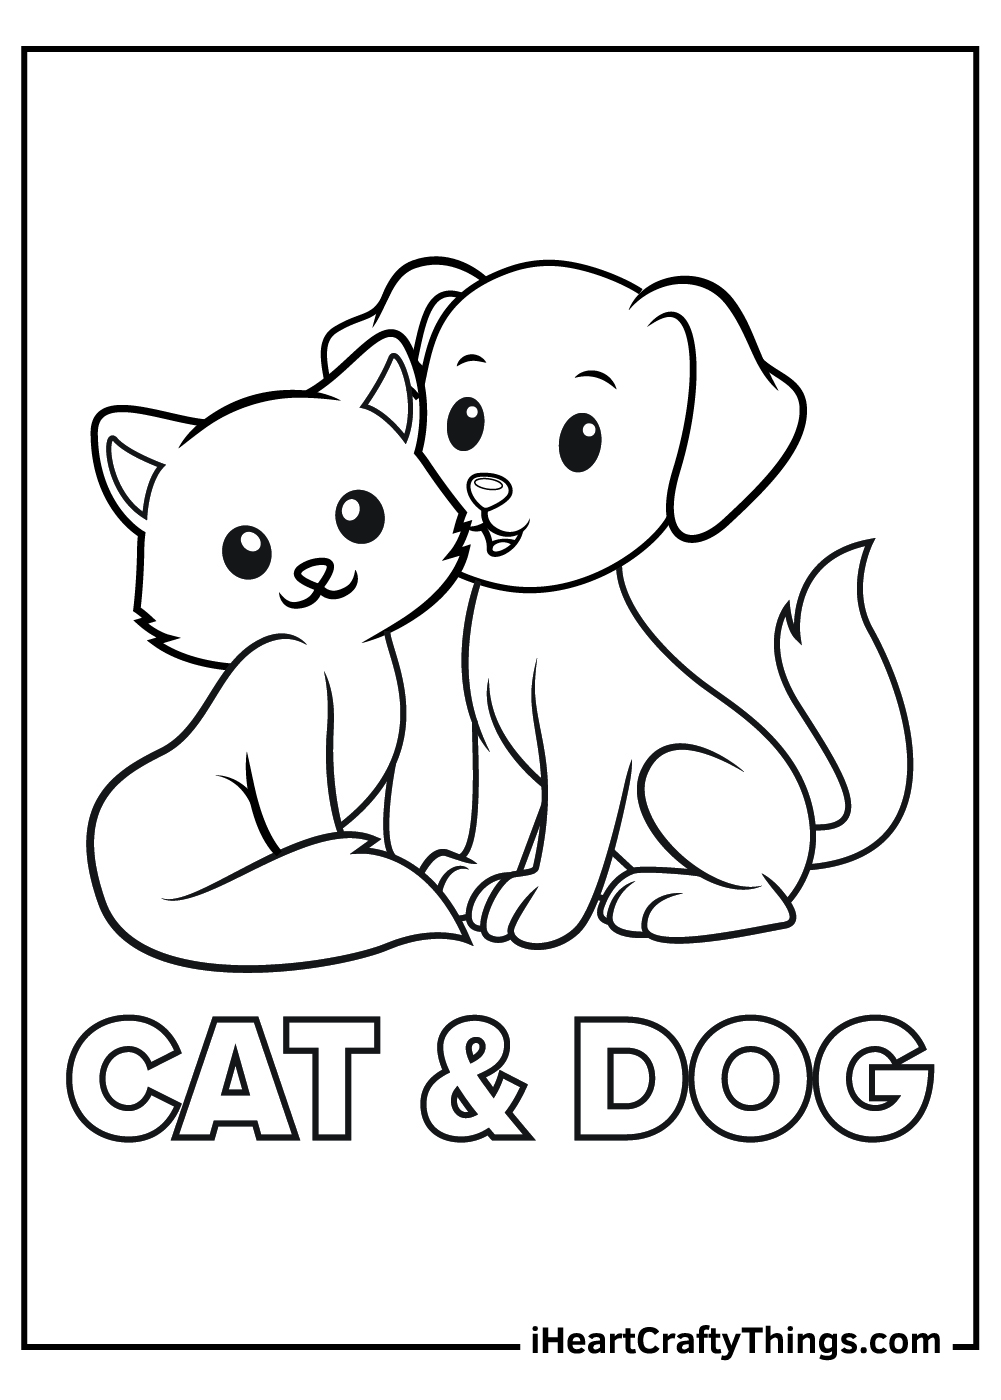 Dog And Cat Coloring Pages Updated 18